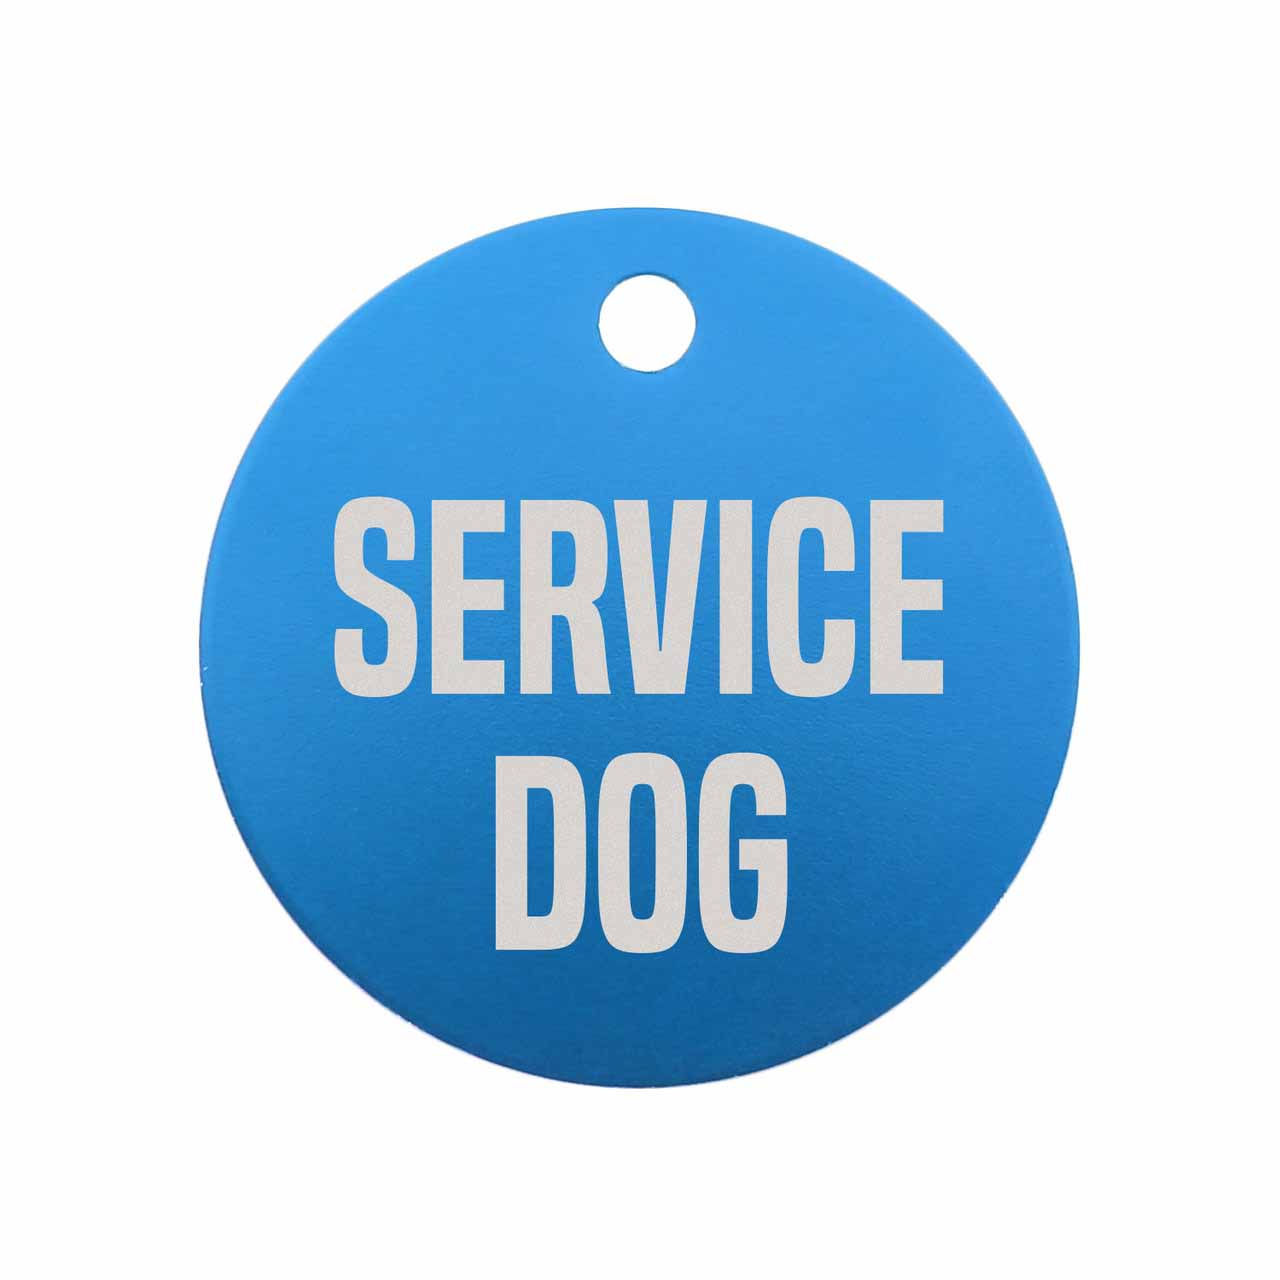 Service Dog Engraved Dog Tag - Blue